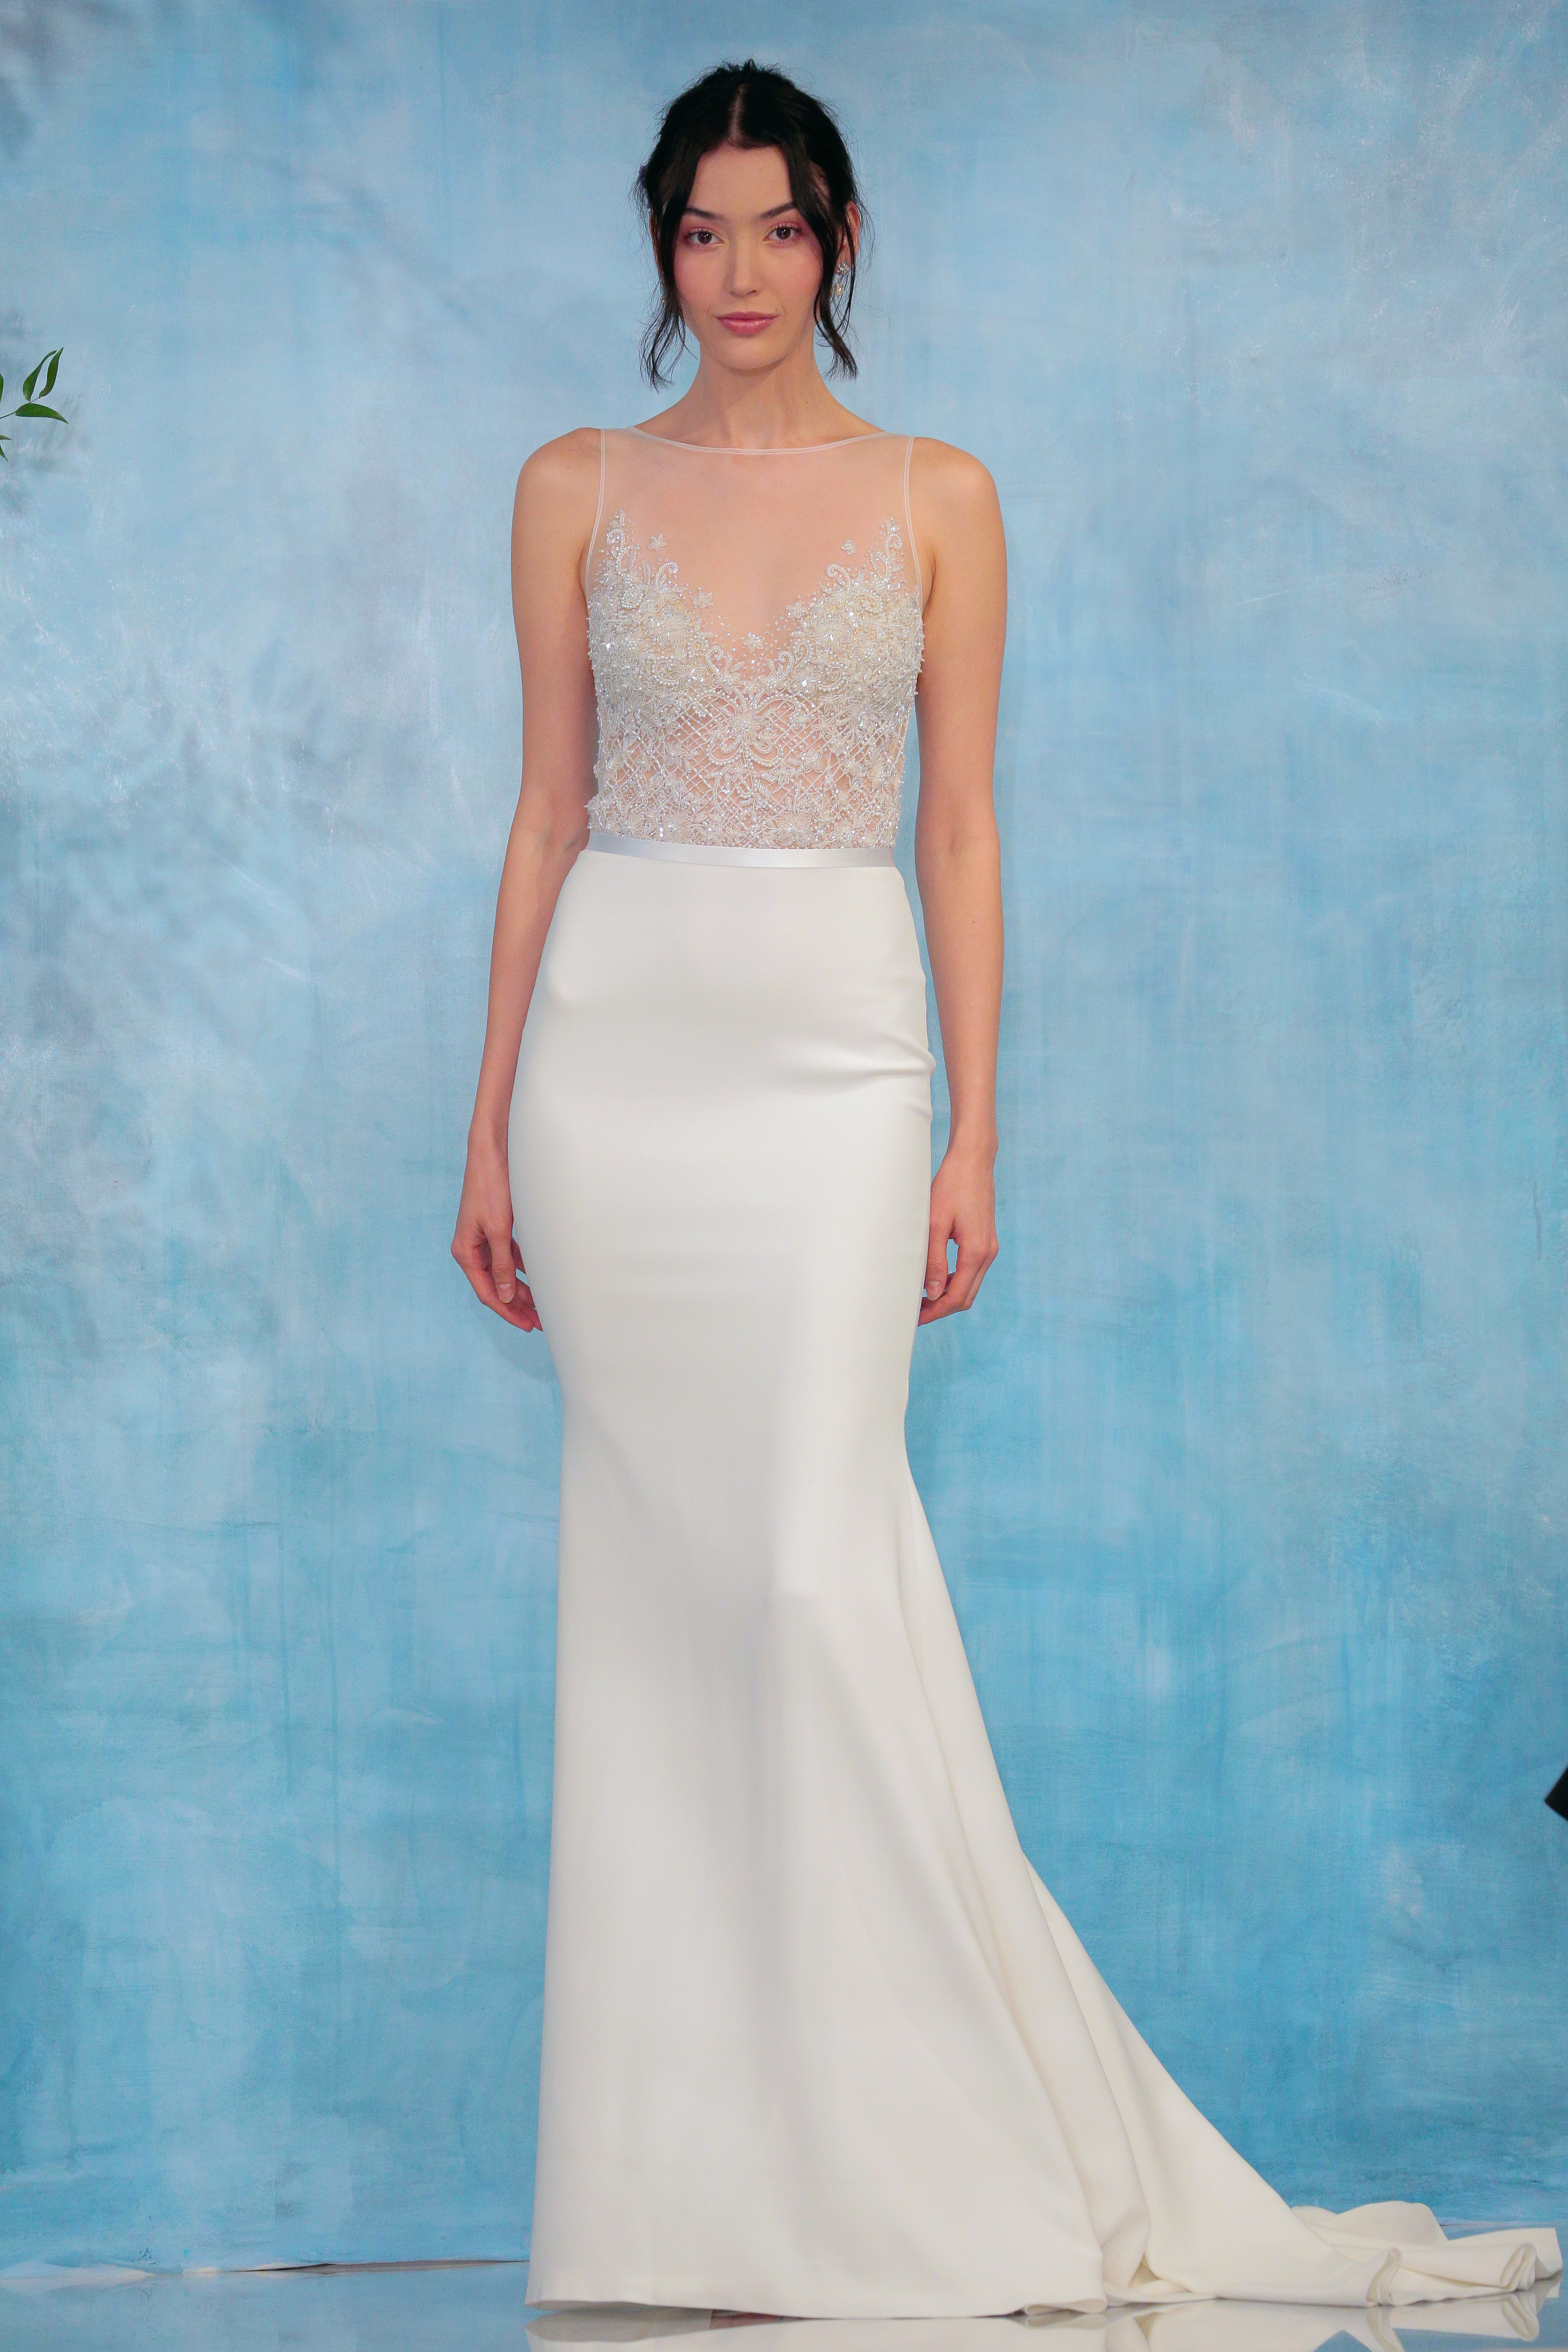 New York Bridal Fashion Week is here and so are all the dreamy dresses